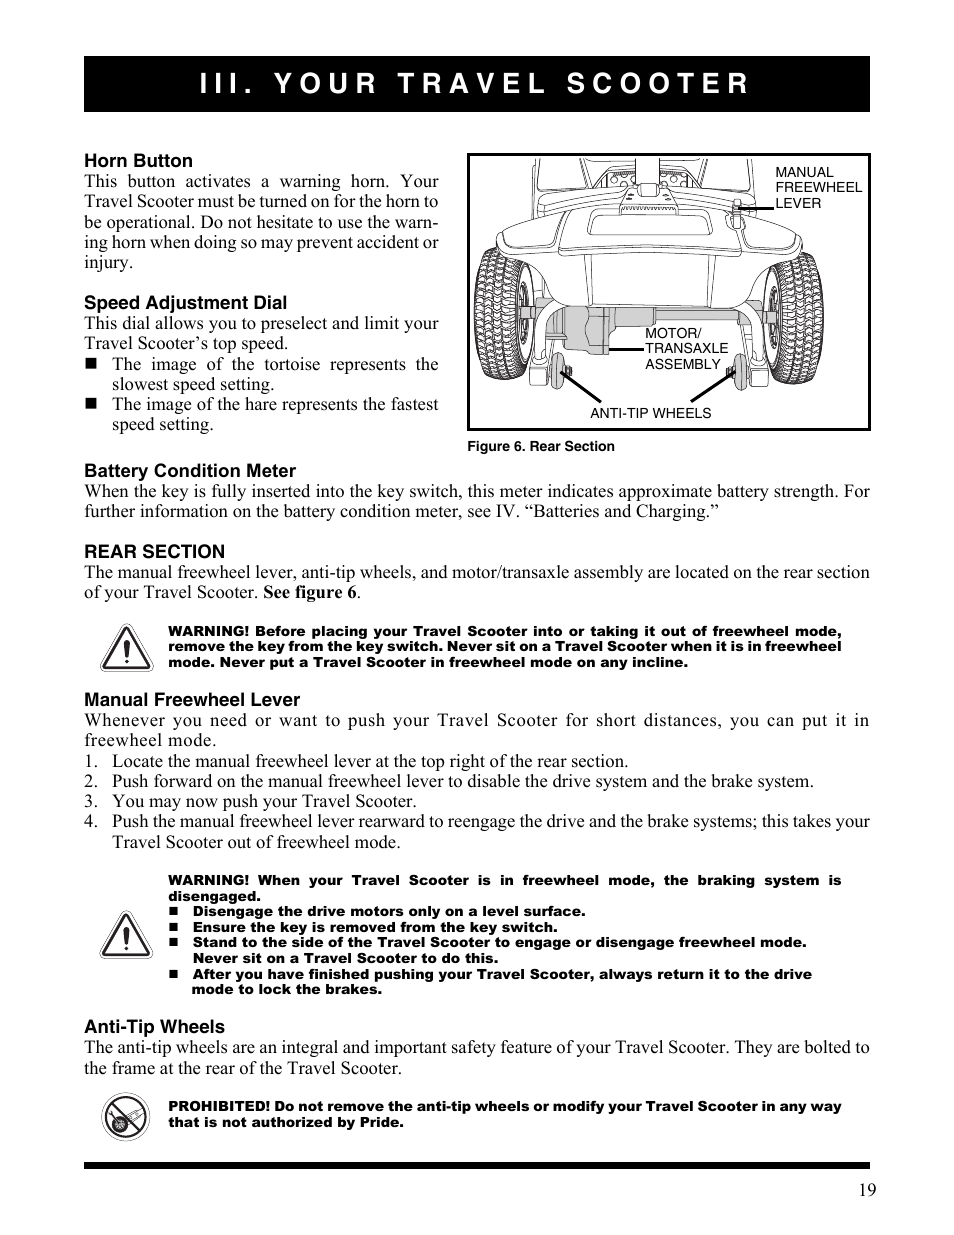 Iii. your travel scooter, Manual freewheel lever, Anti-tip wheels |  Activeforever Pride Go Go Elite Traveller Plus Electric Scooter User Manual  | Page 19 / ...